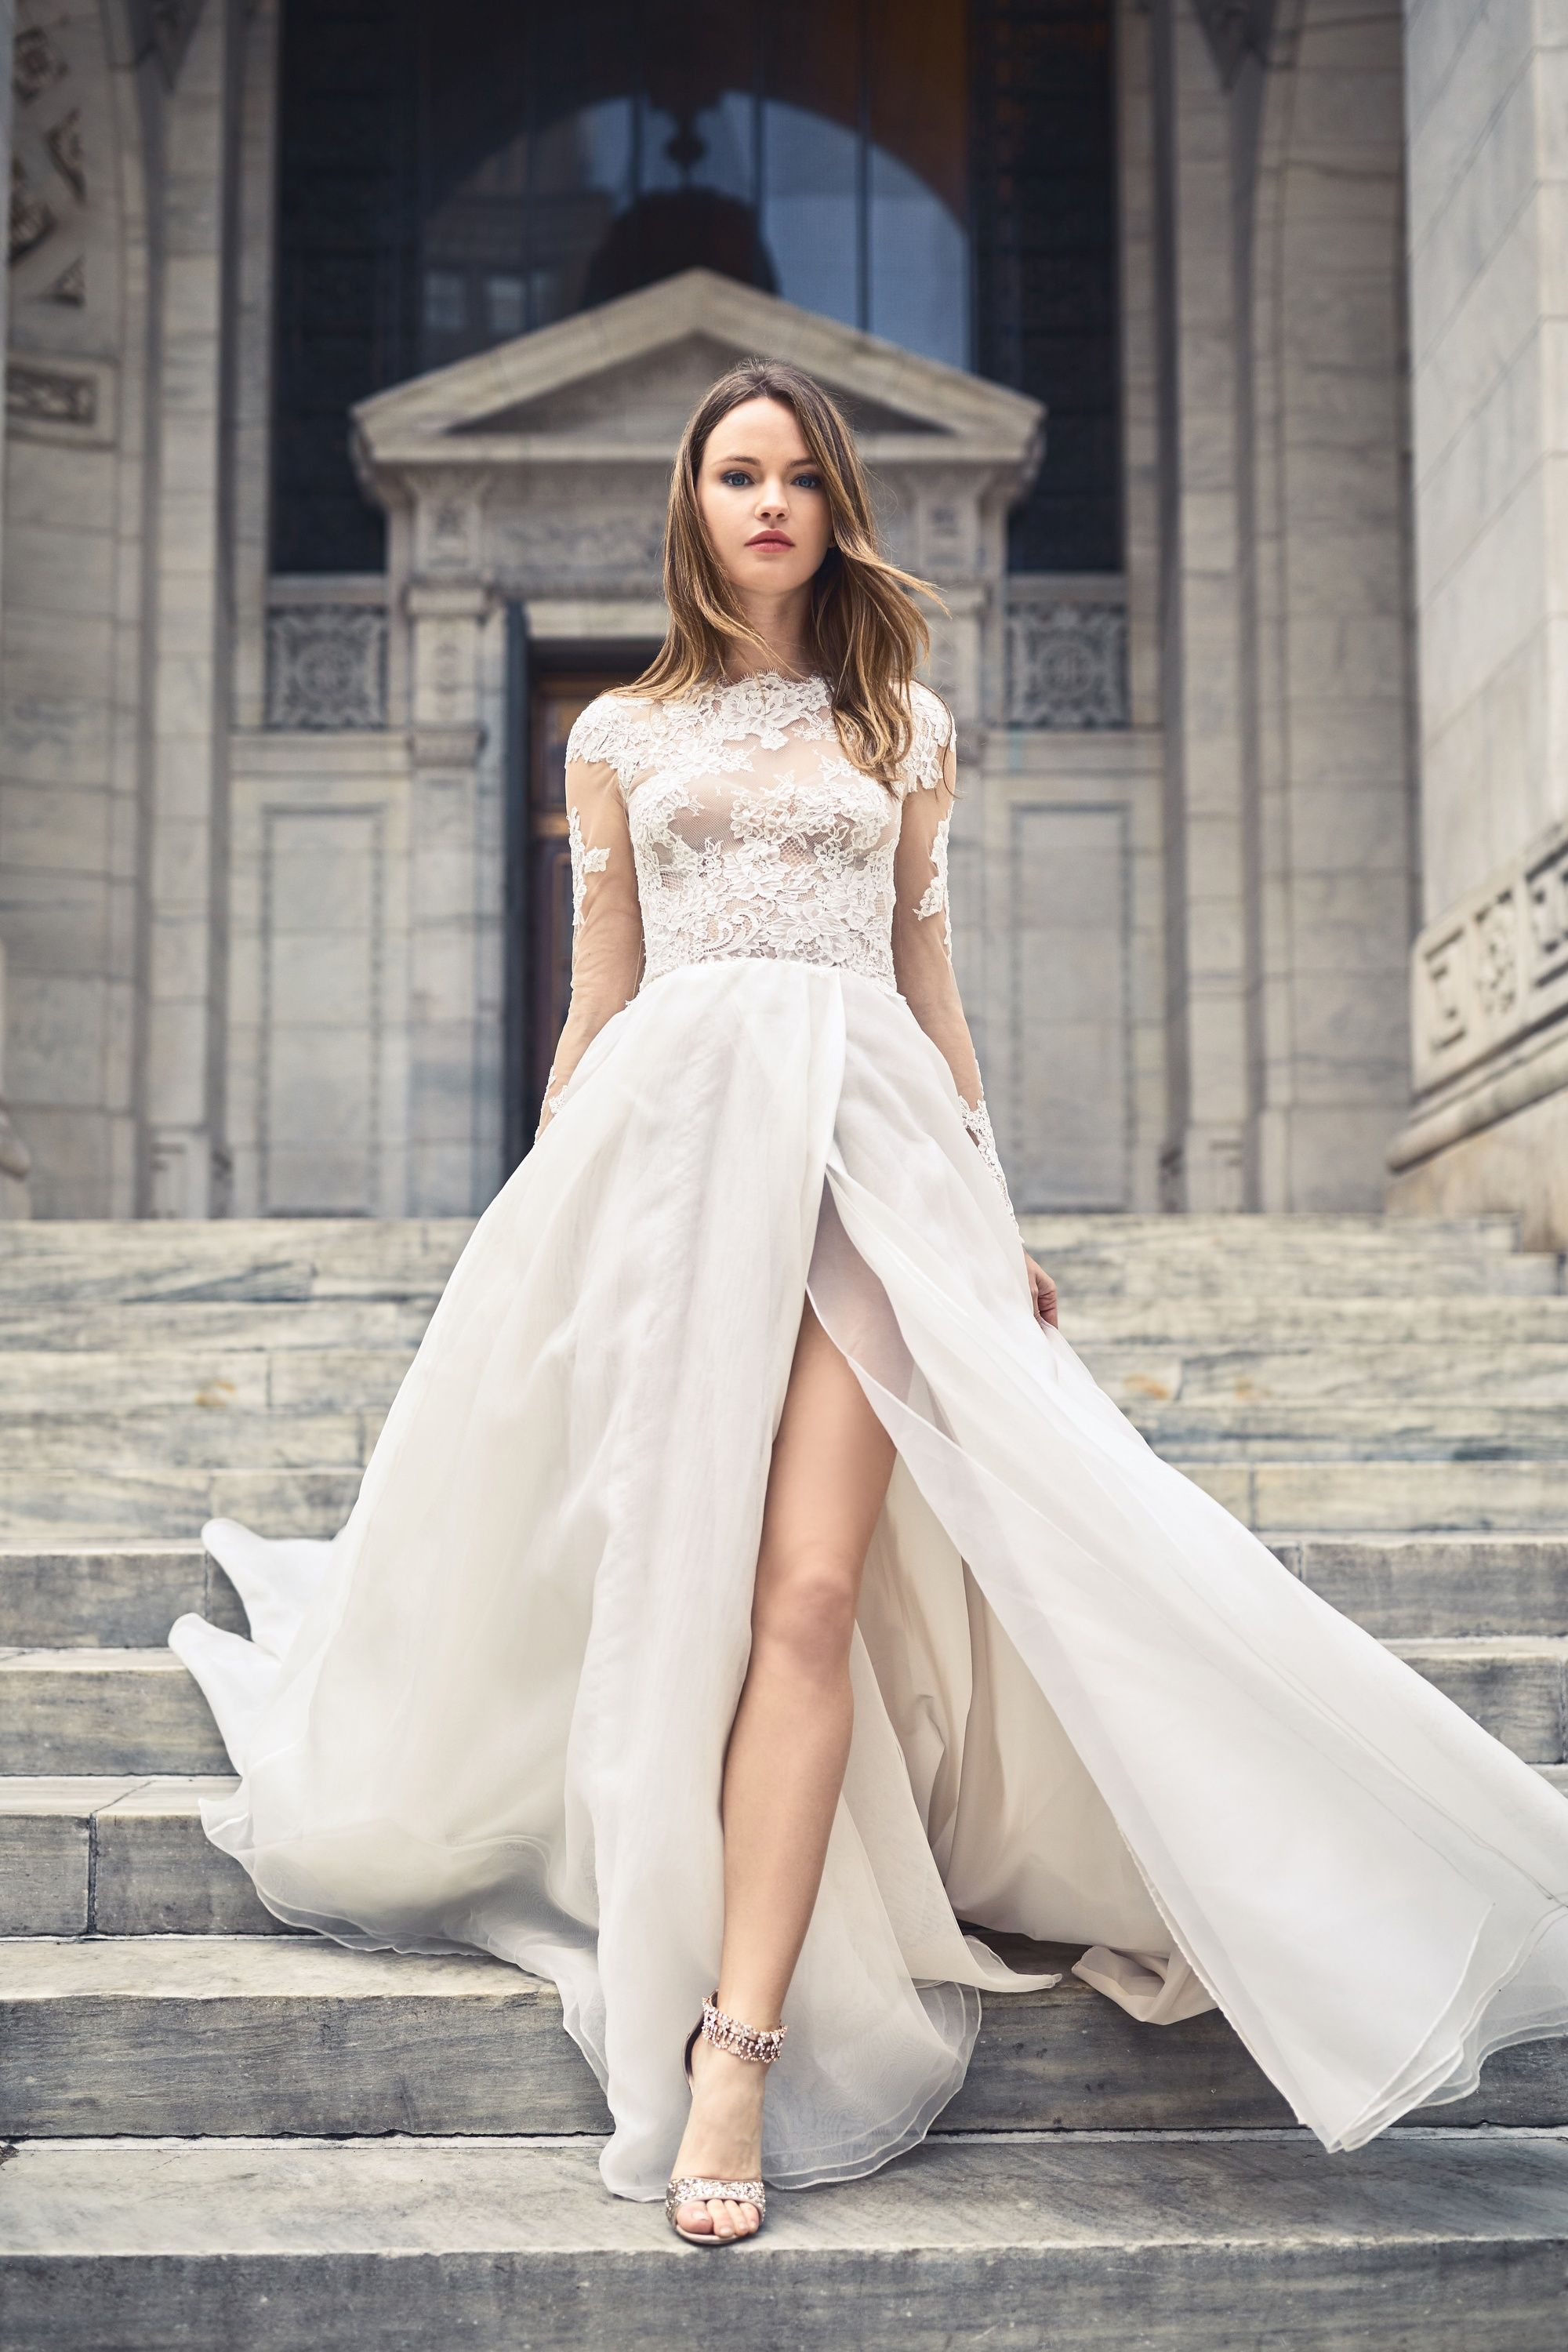 5352bf5026a816 Take a look at the best Winter Wedding dresses 2017 in the photos below and  get ideas for your wedding! The 5 winter wedding color schemes that are  going to ...